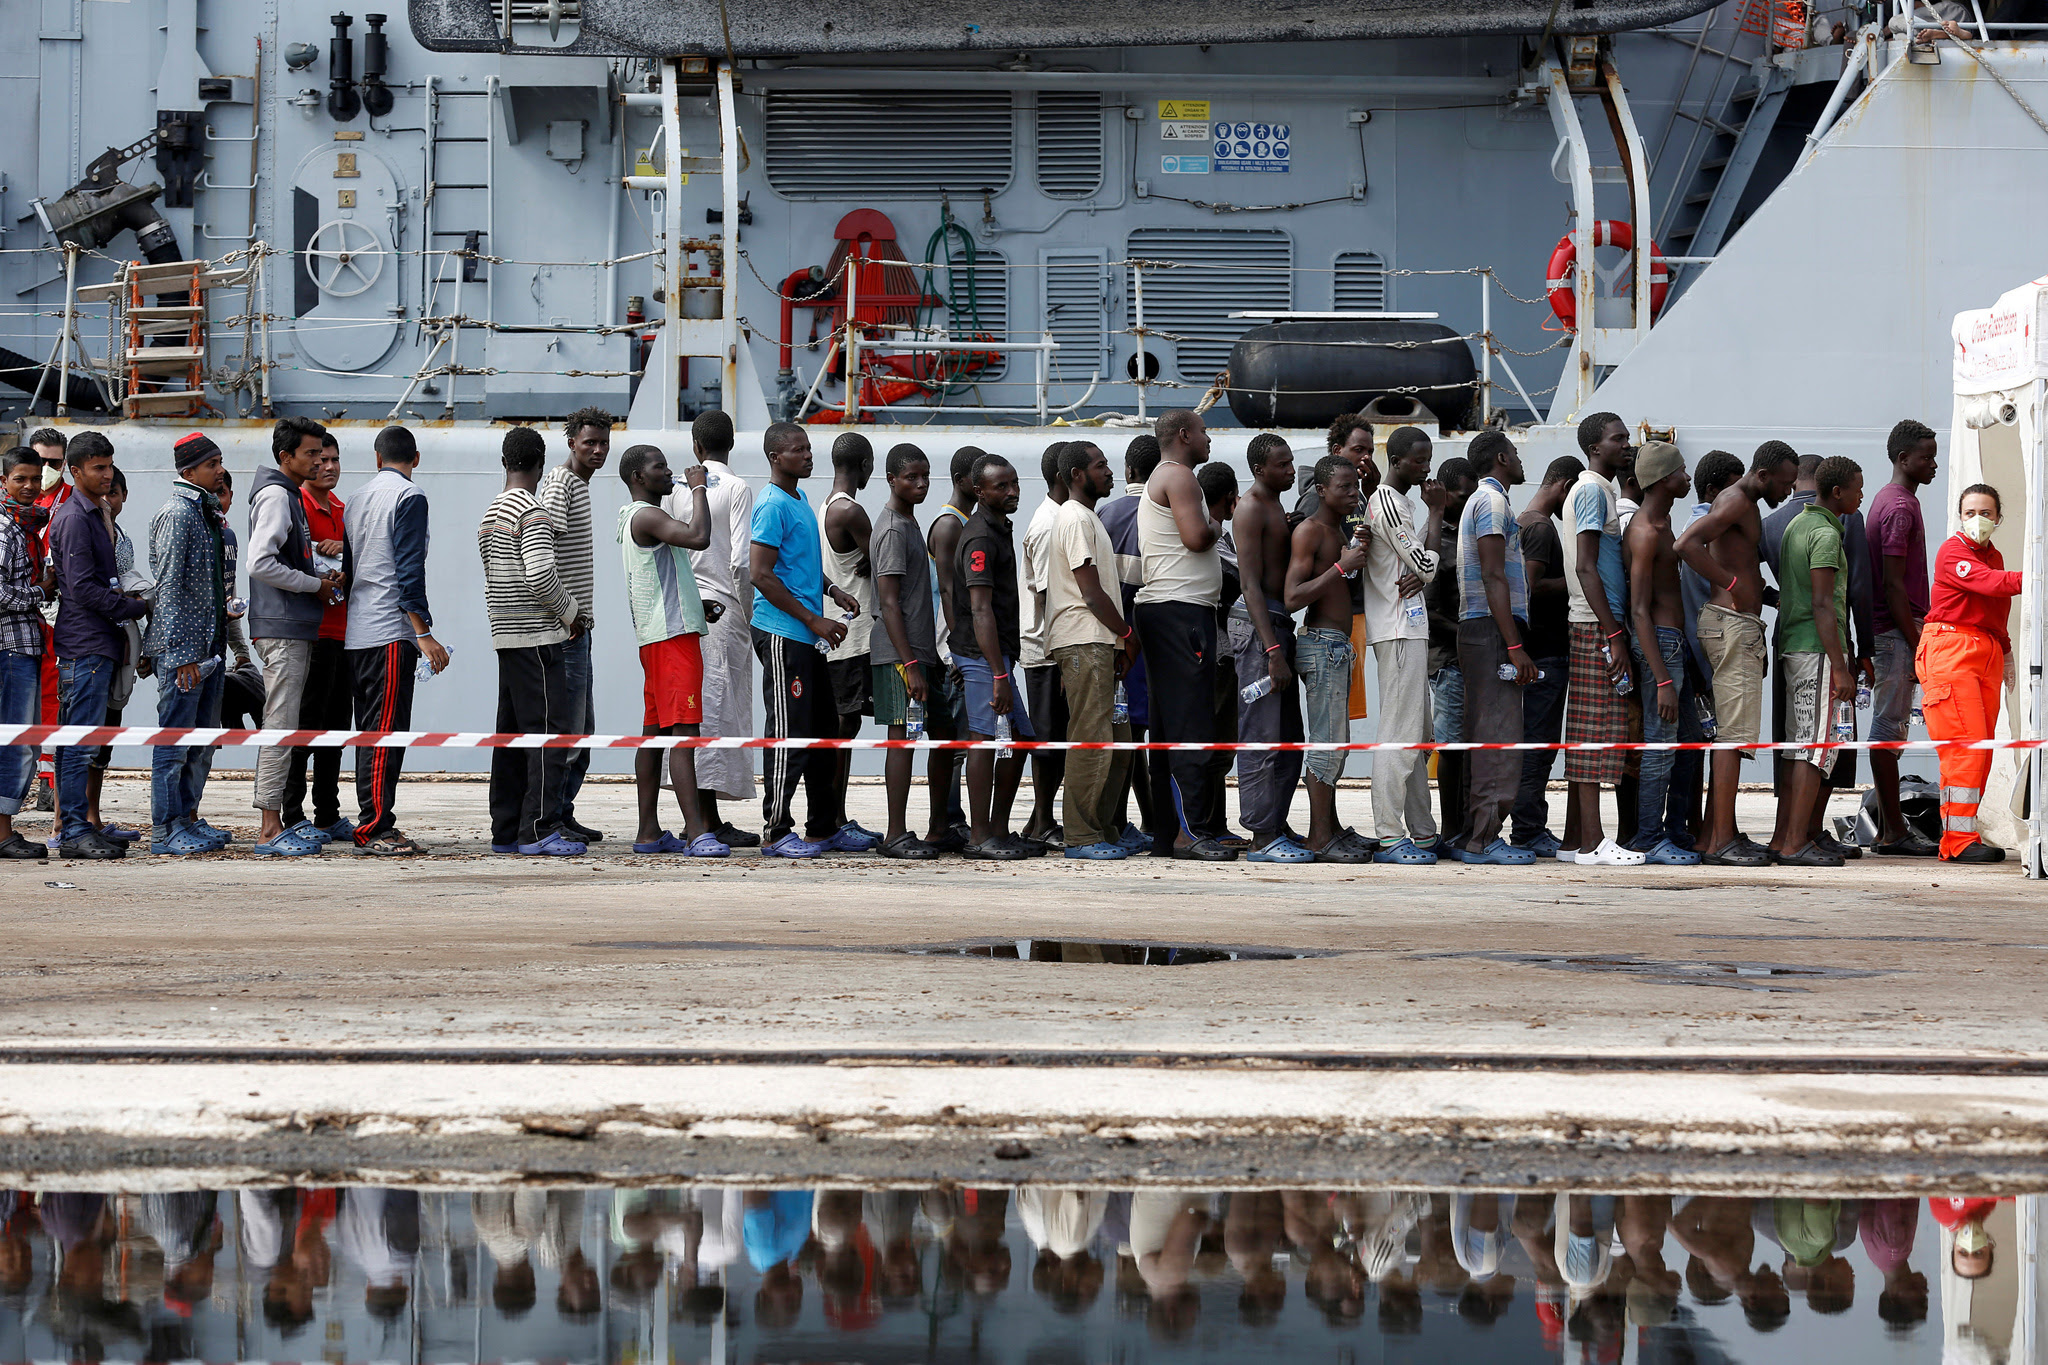 Migrants stand in line after disembarking from the Italian Navy vessel Bersagliare at the Sicilian port of Augusta, Italy